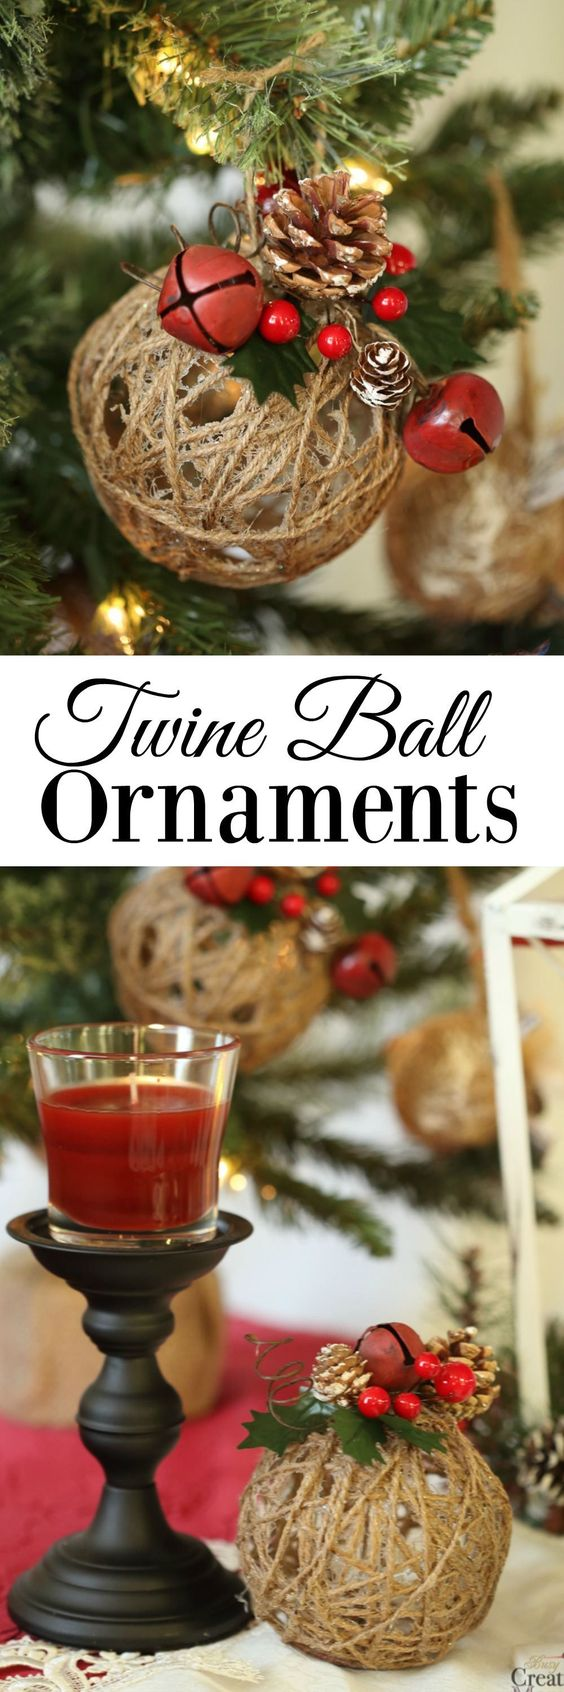 Bring a Holiday atmosphere to your home by creating Rustic Christmas Ornaments with this tutorial for Glitter Twine Ball Ornaments. #GladeHolidayJoy  AD: